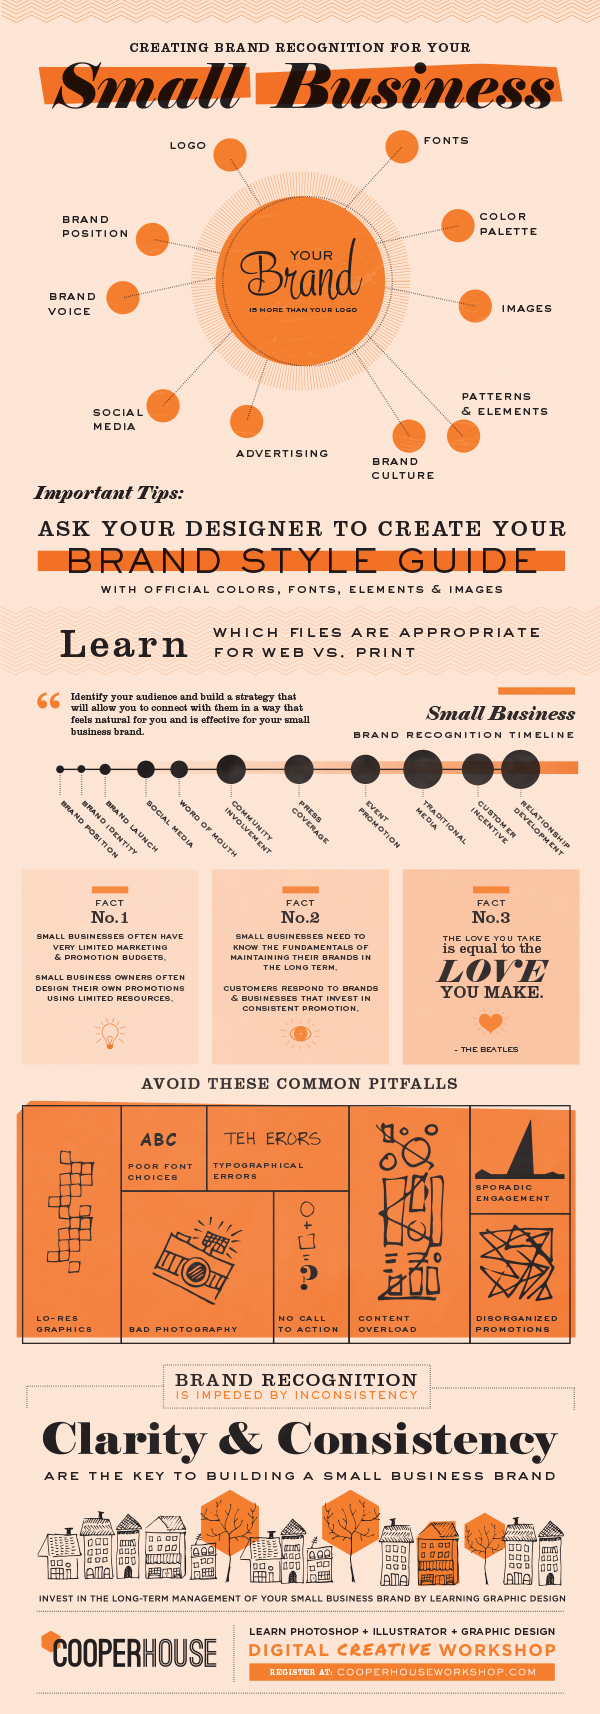 Creating Brand Recognition for Your Small Business